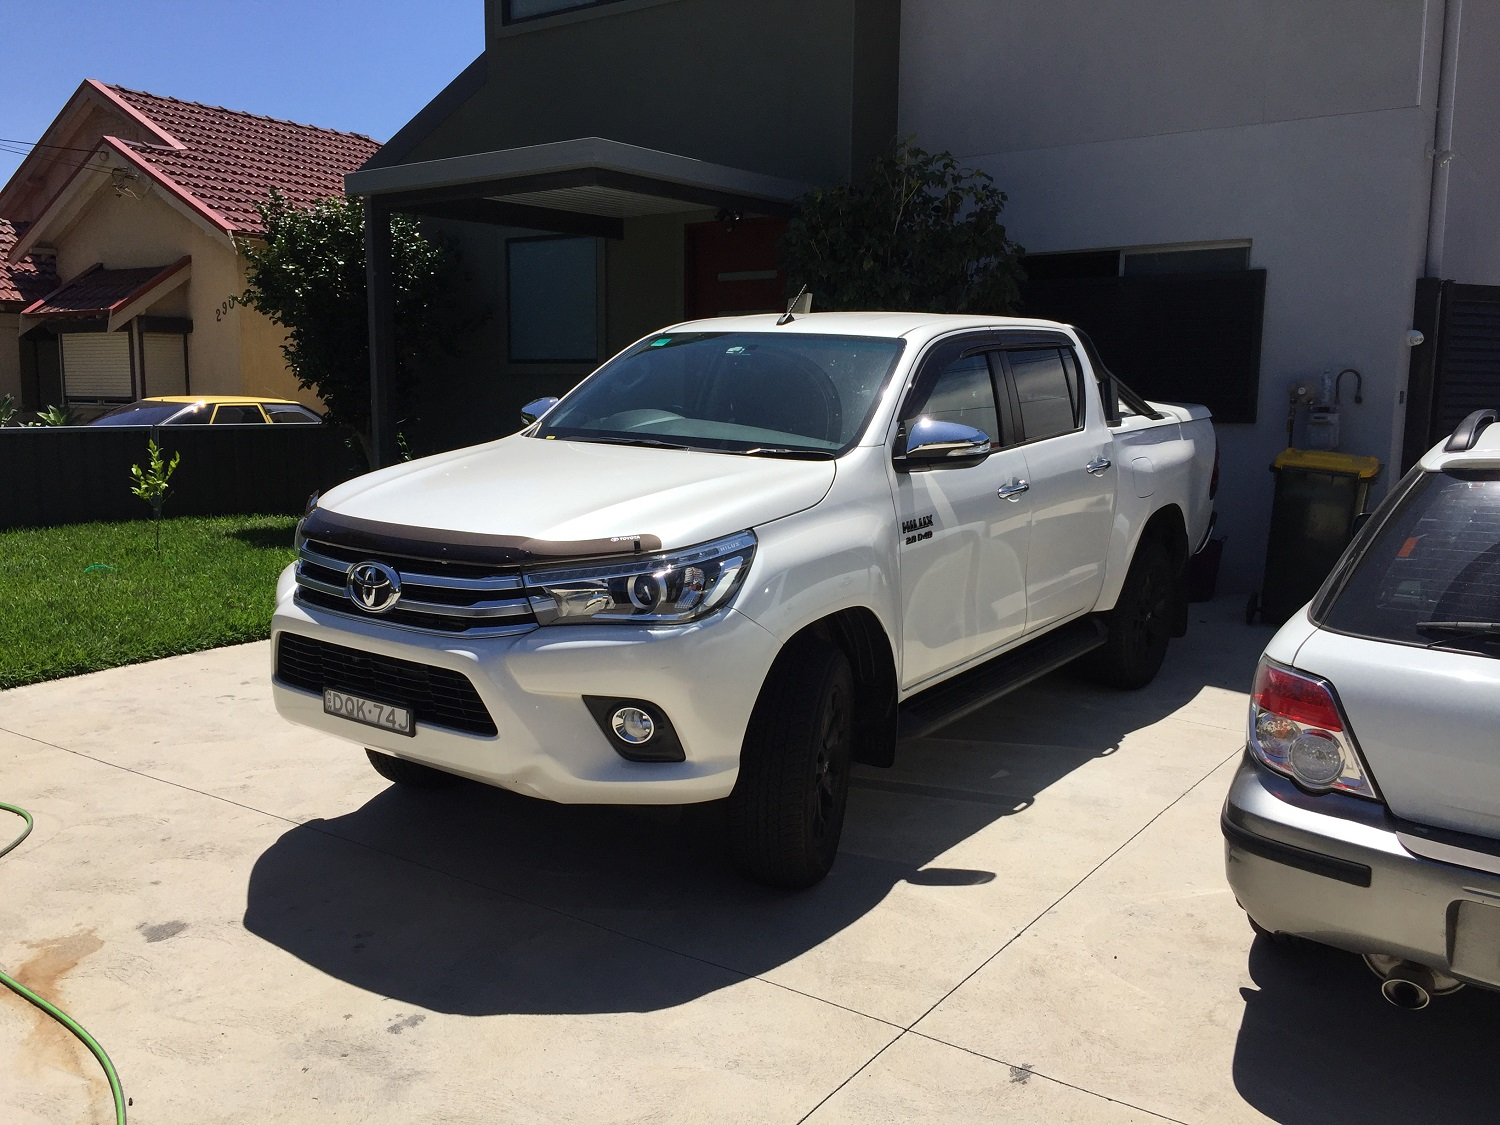 Picture of Huseyin's 2017 Toyota Hilux